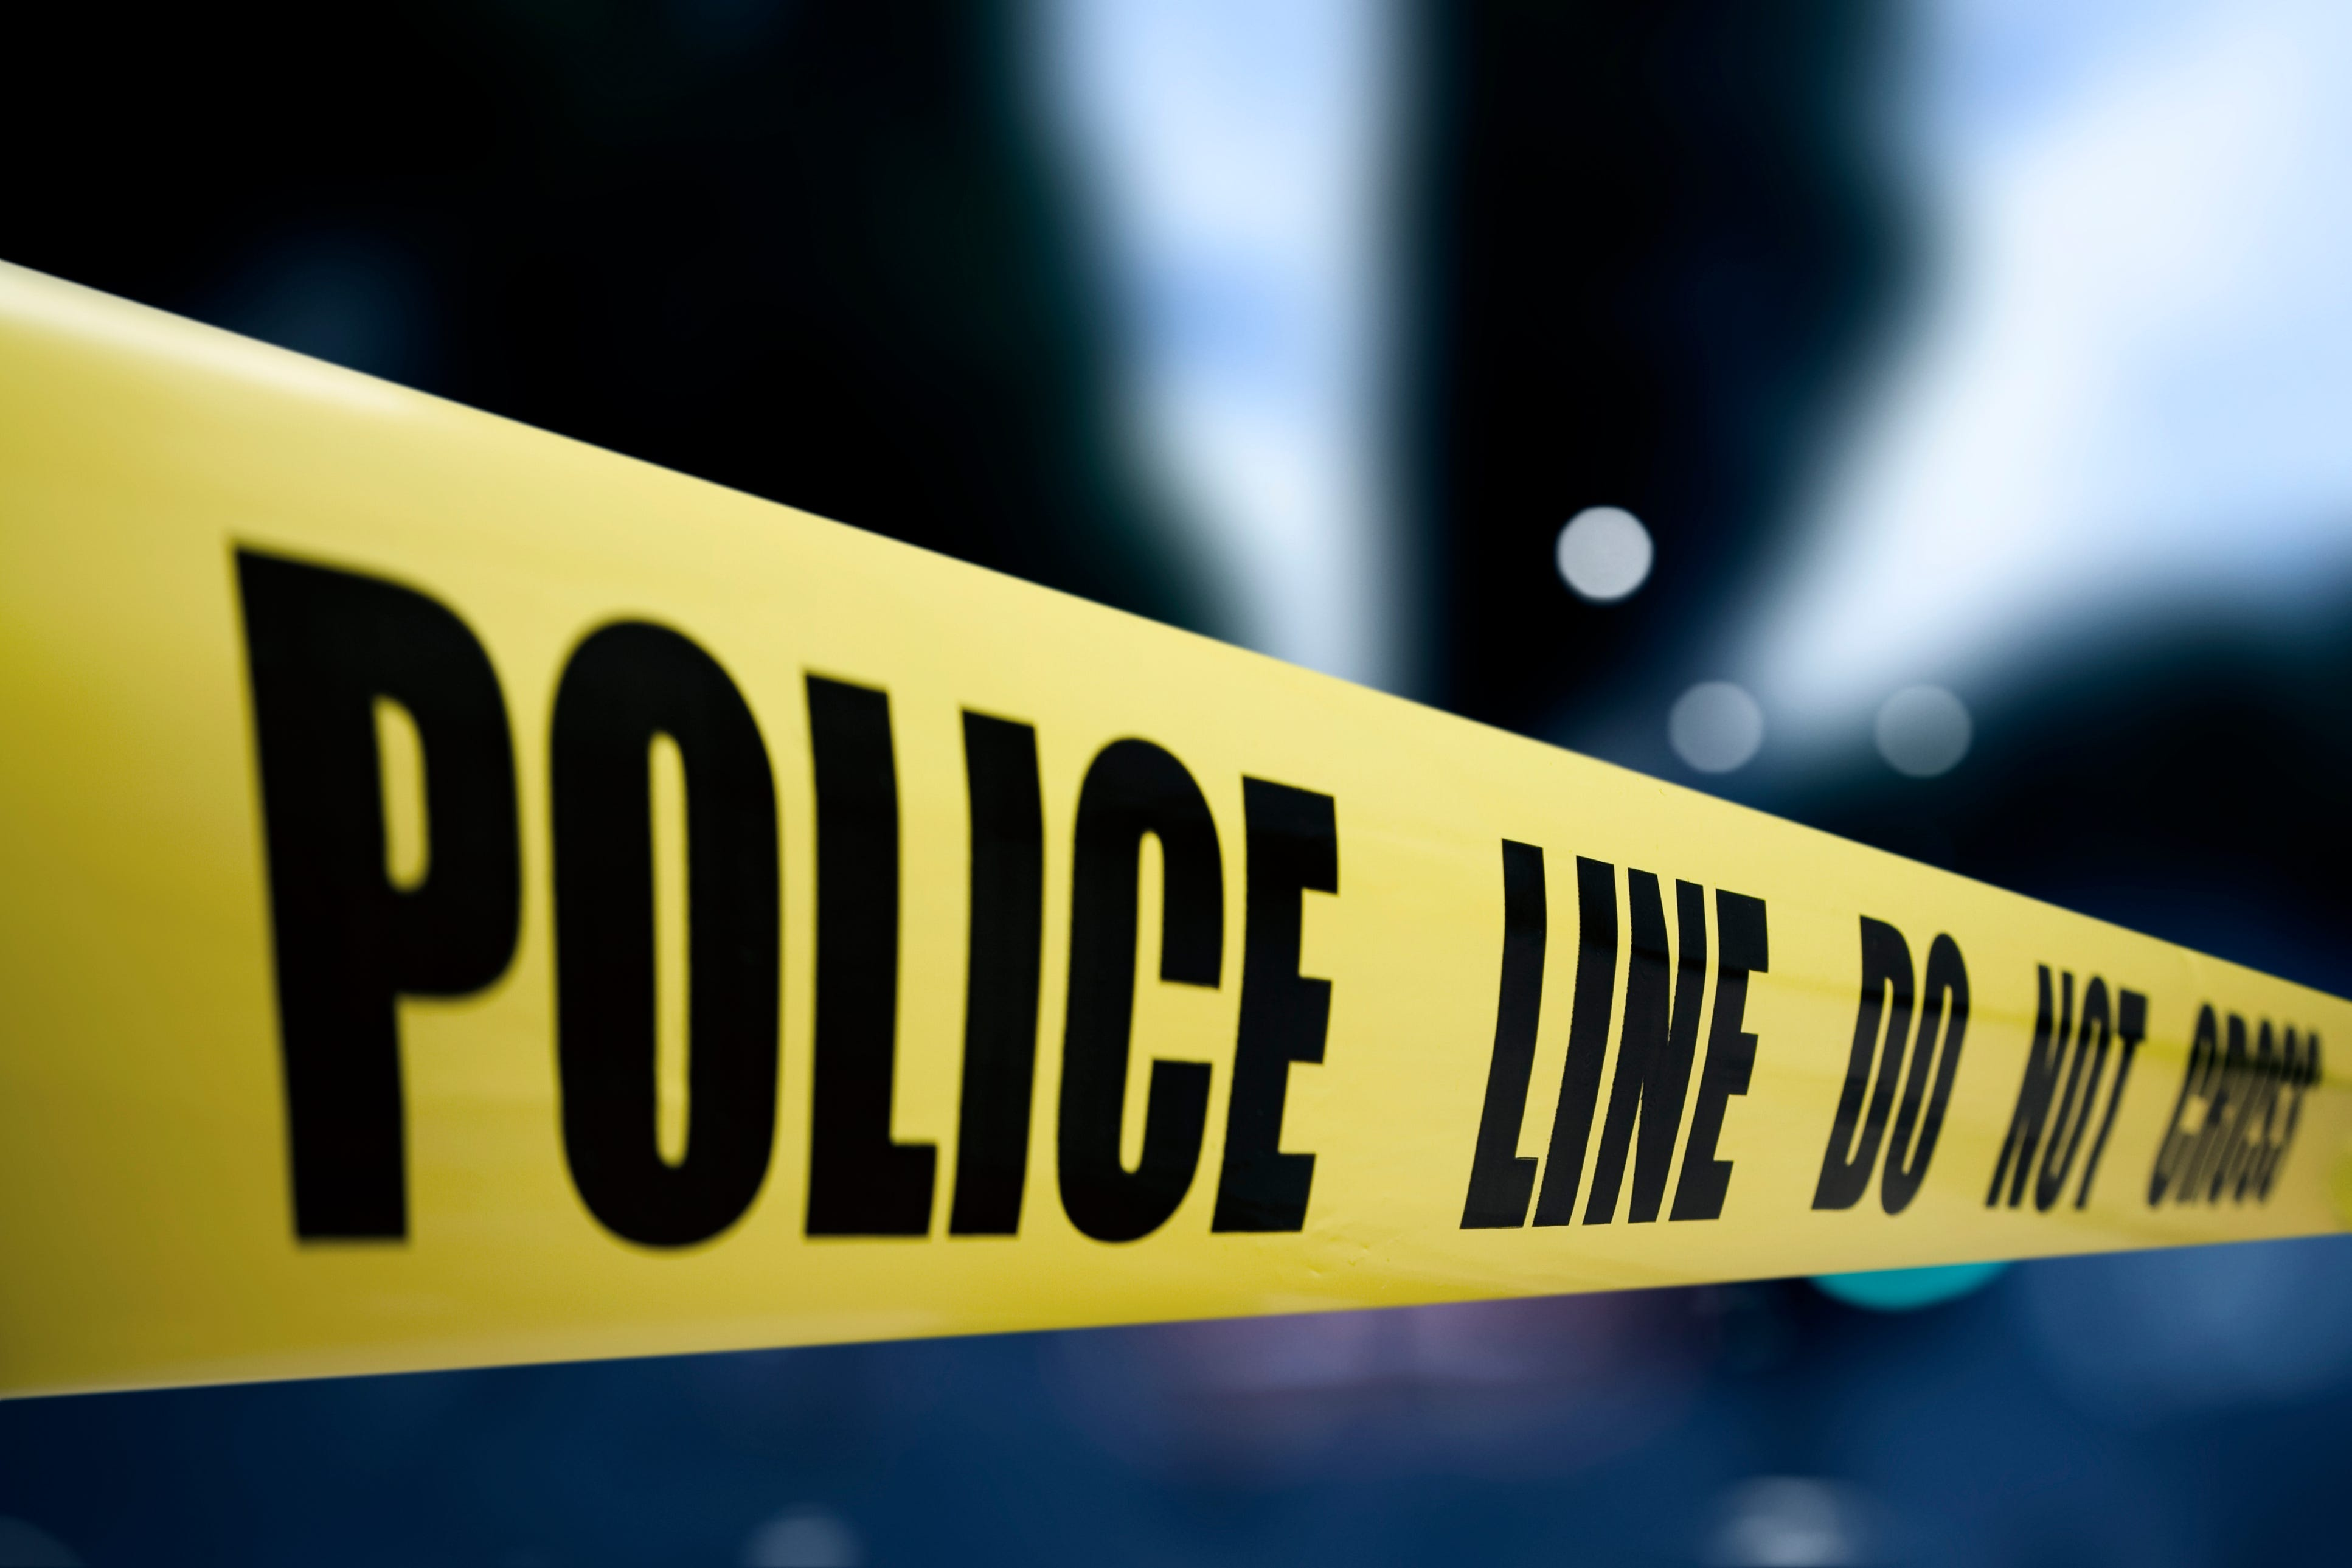 Man broke in, assaulted woman, fired shots: police